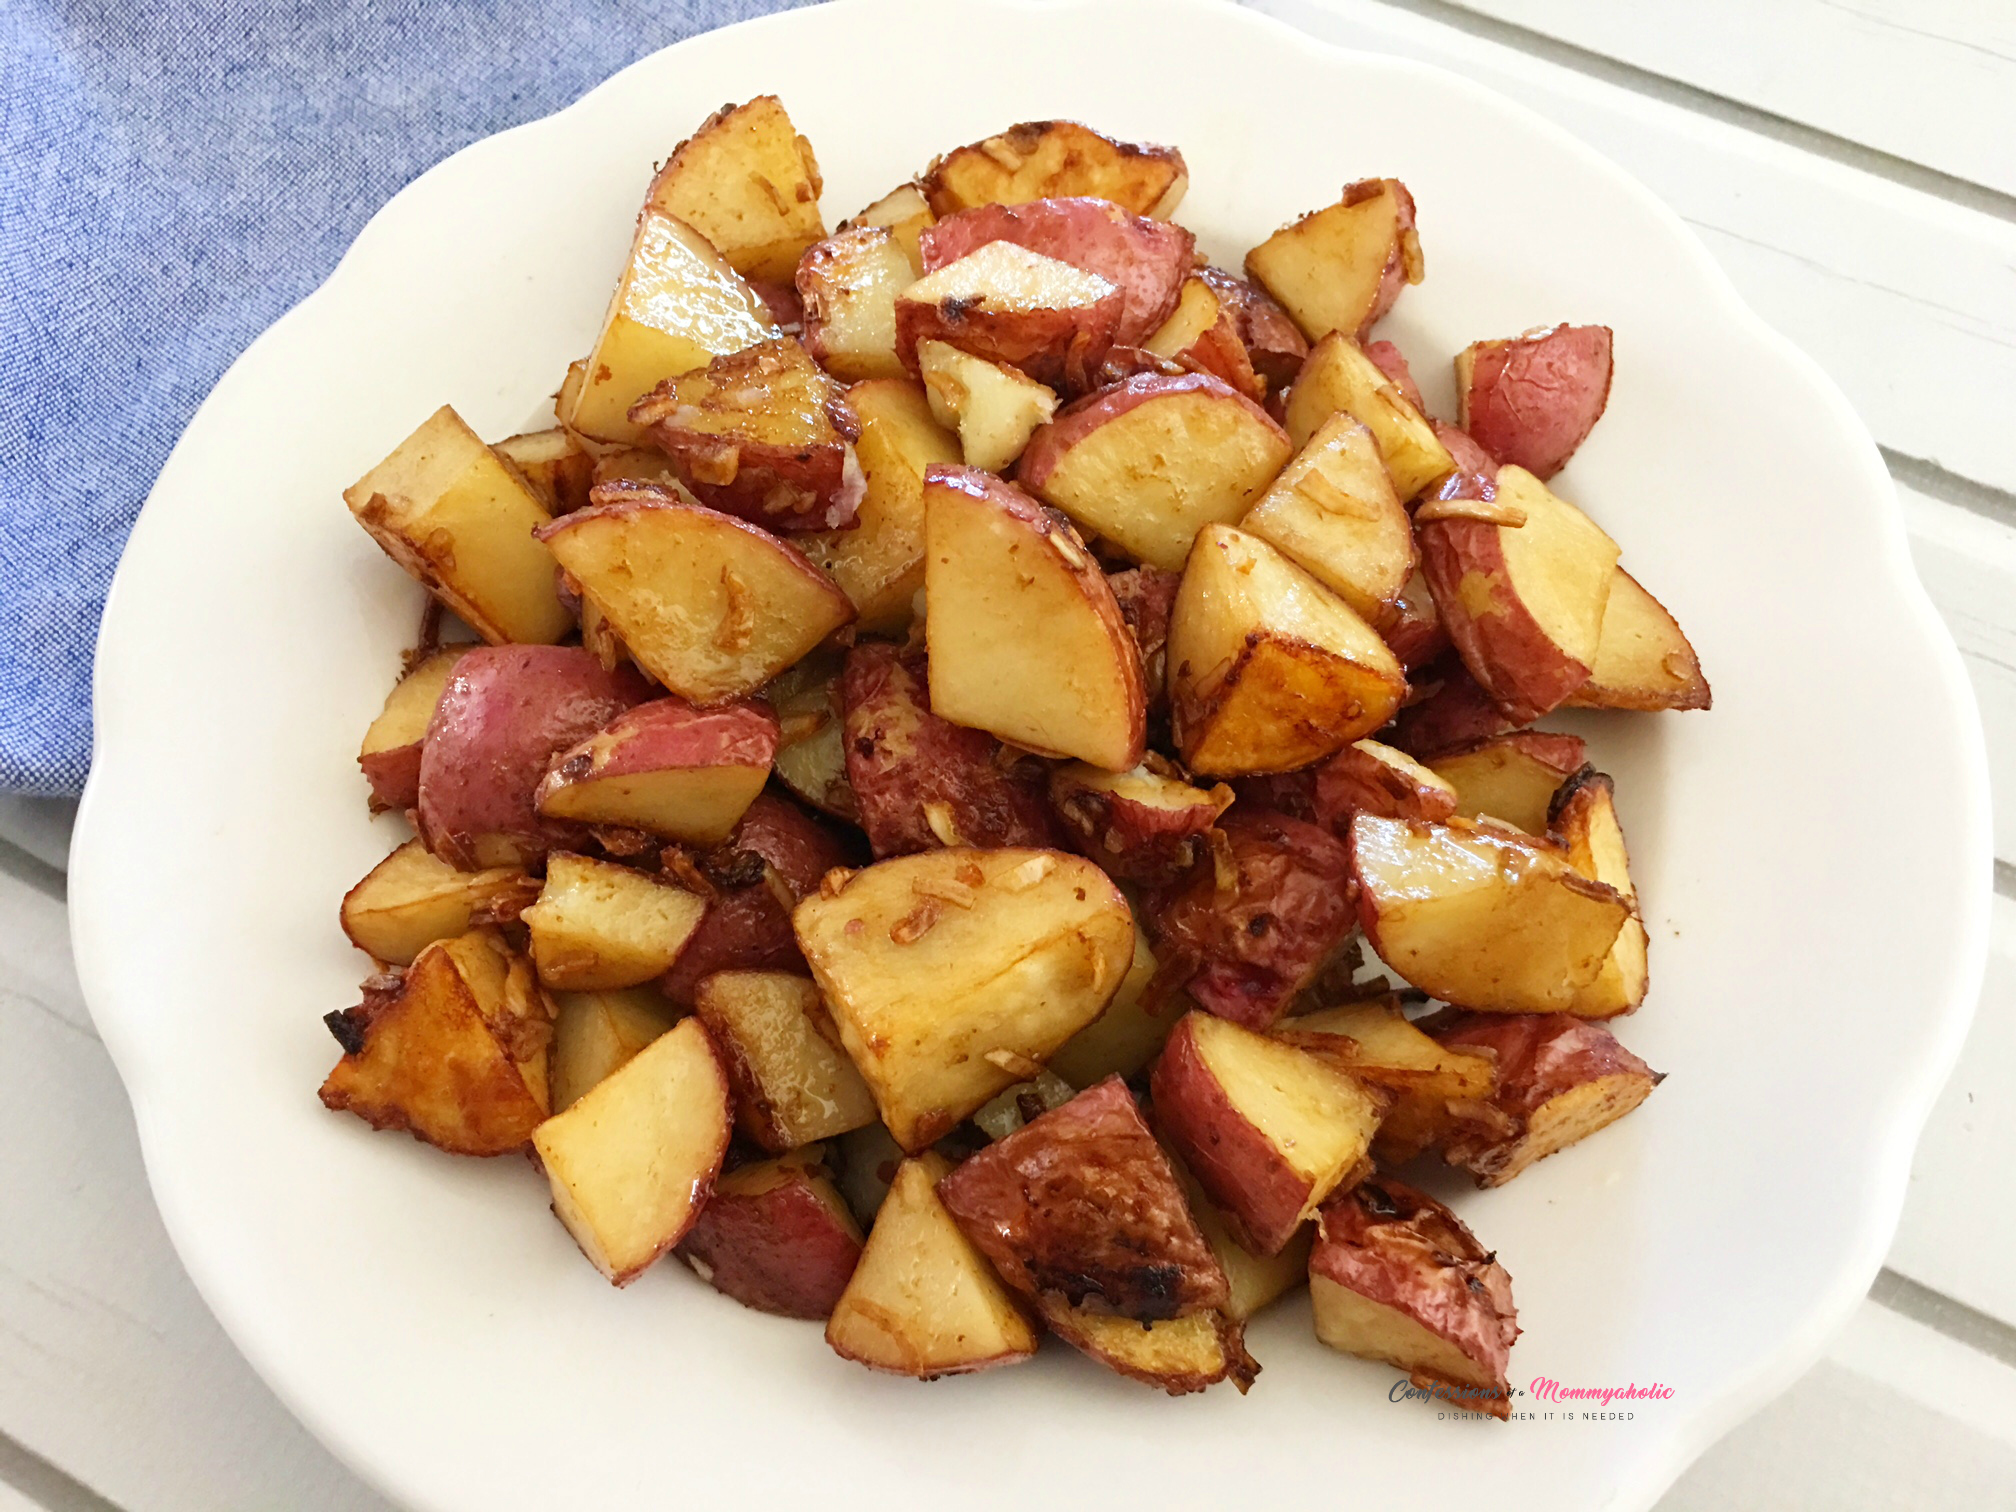 Oven Roasted Potatoes on Plate Horizontal